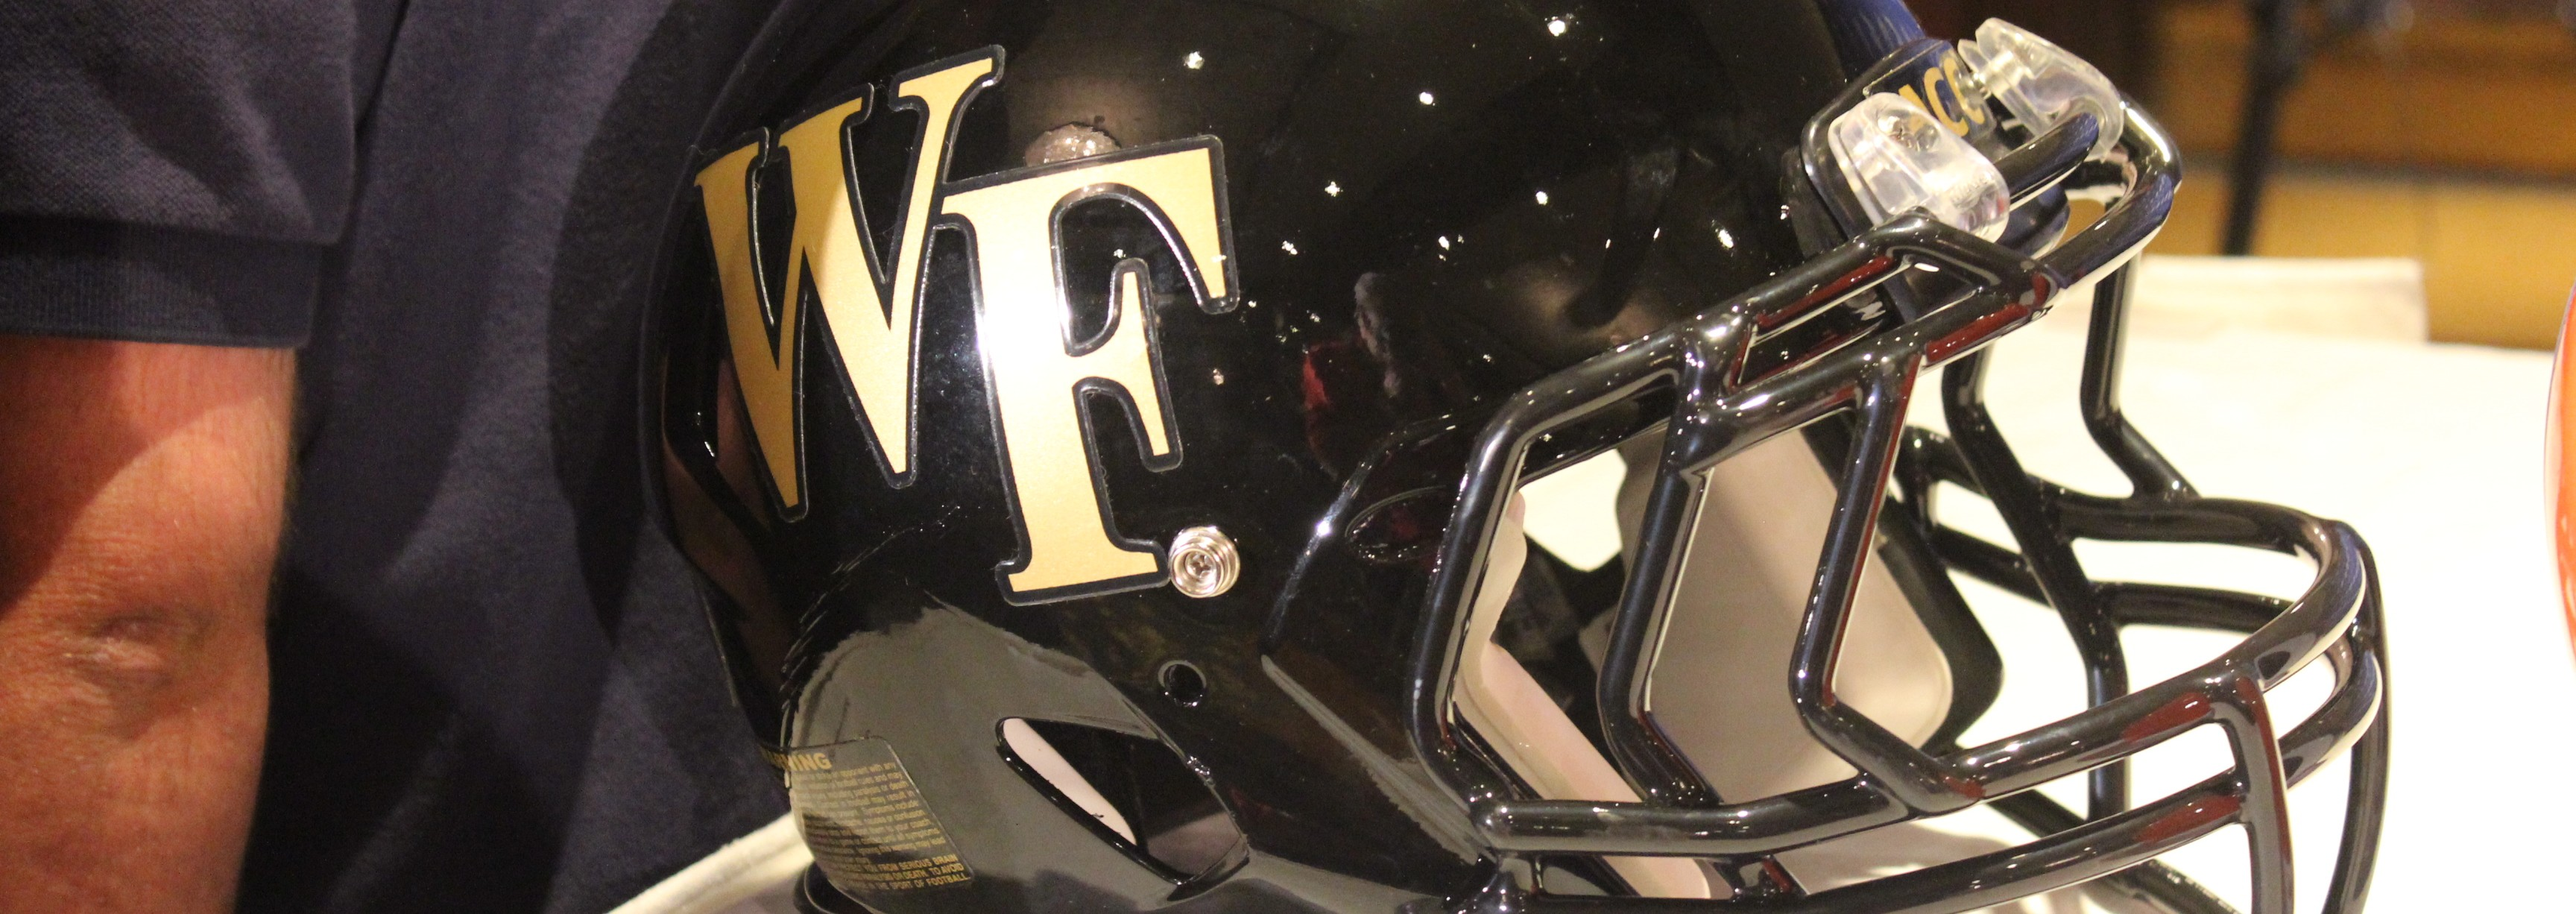 Wake Forest Helmet 2014 ACC Kickoff Photo by Mark Blankenbaker Fitted